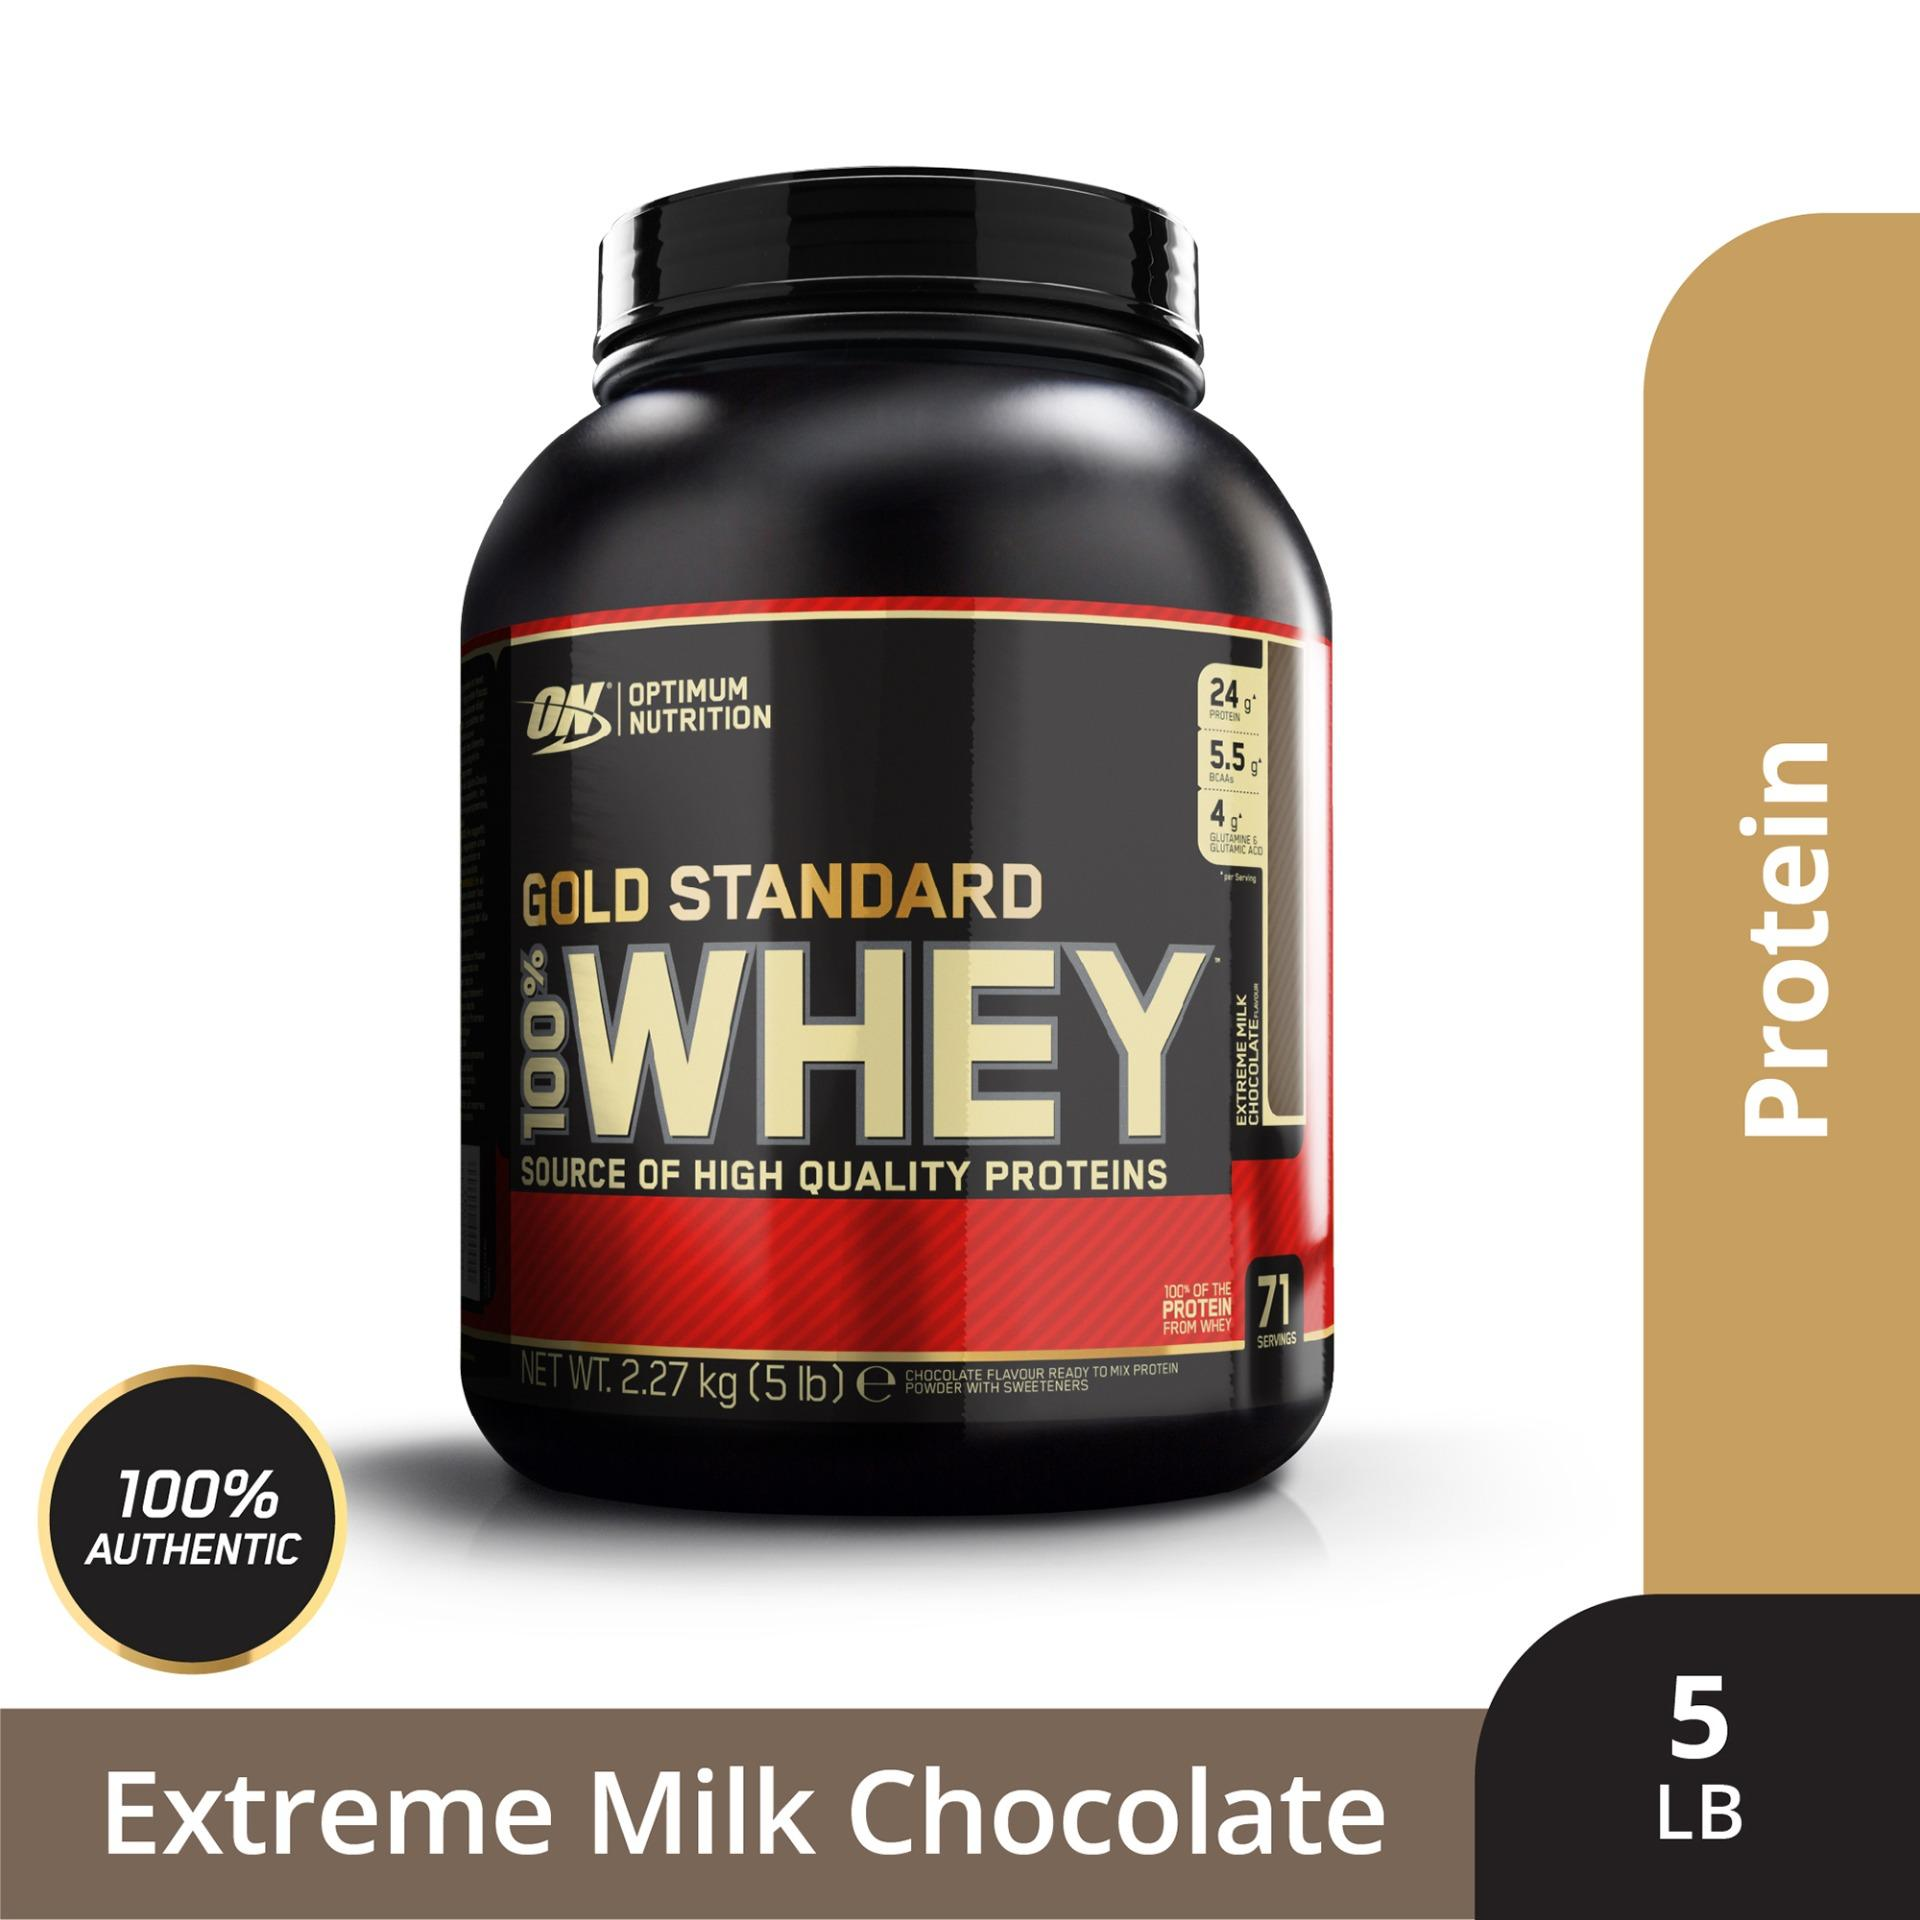 Sports Nutrition Brands And Health On Sale Prices Set Appeton 60 Vanila Tin 900 Optimum Gold Standard Whey Protein 5 Lbs Extreme Milk Chocolate